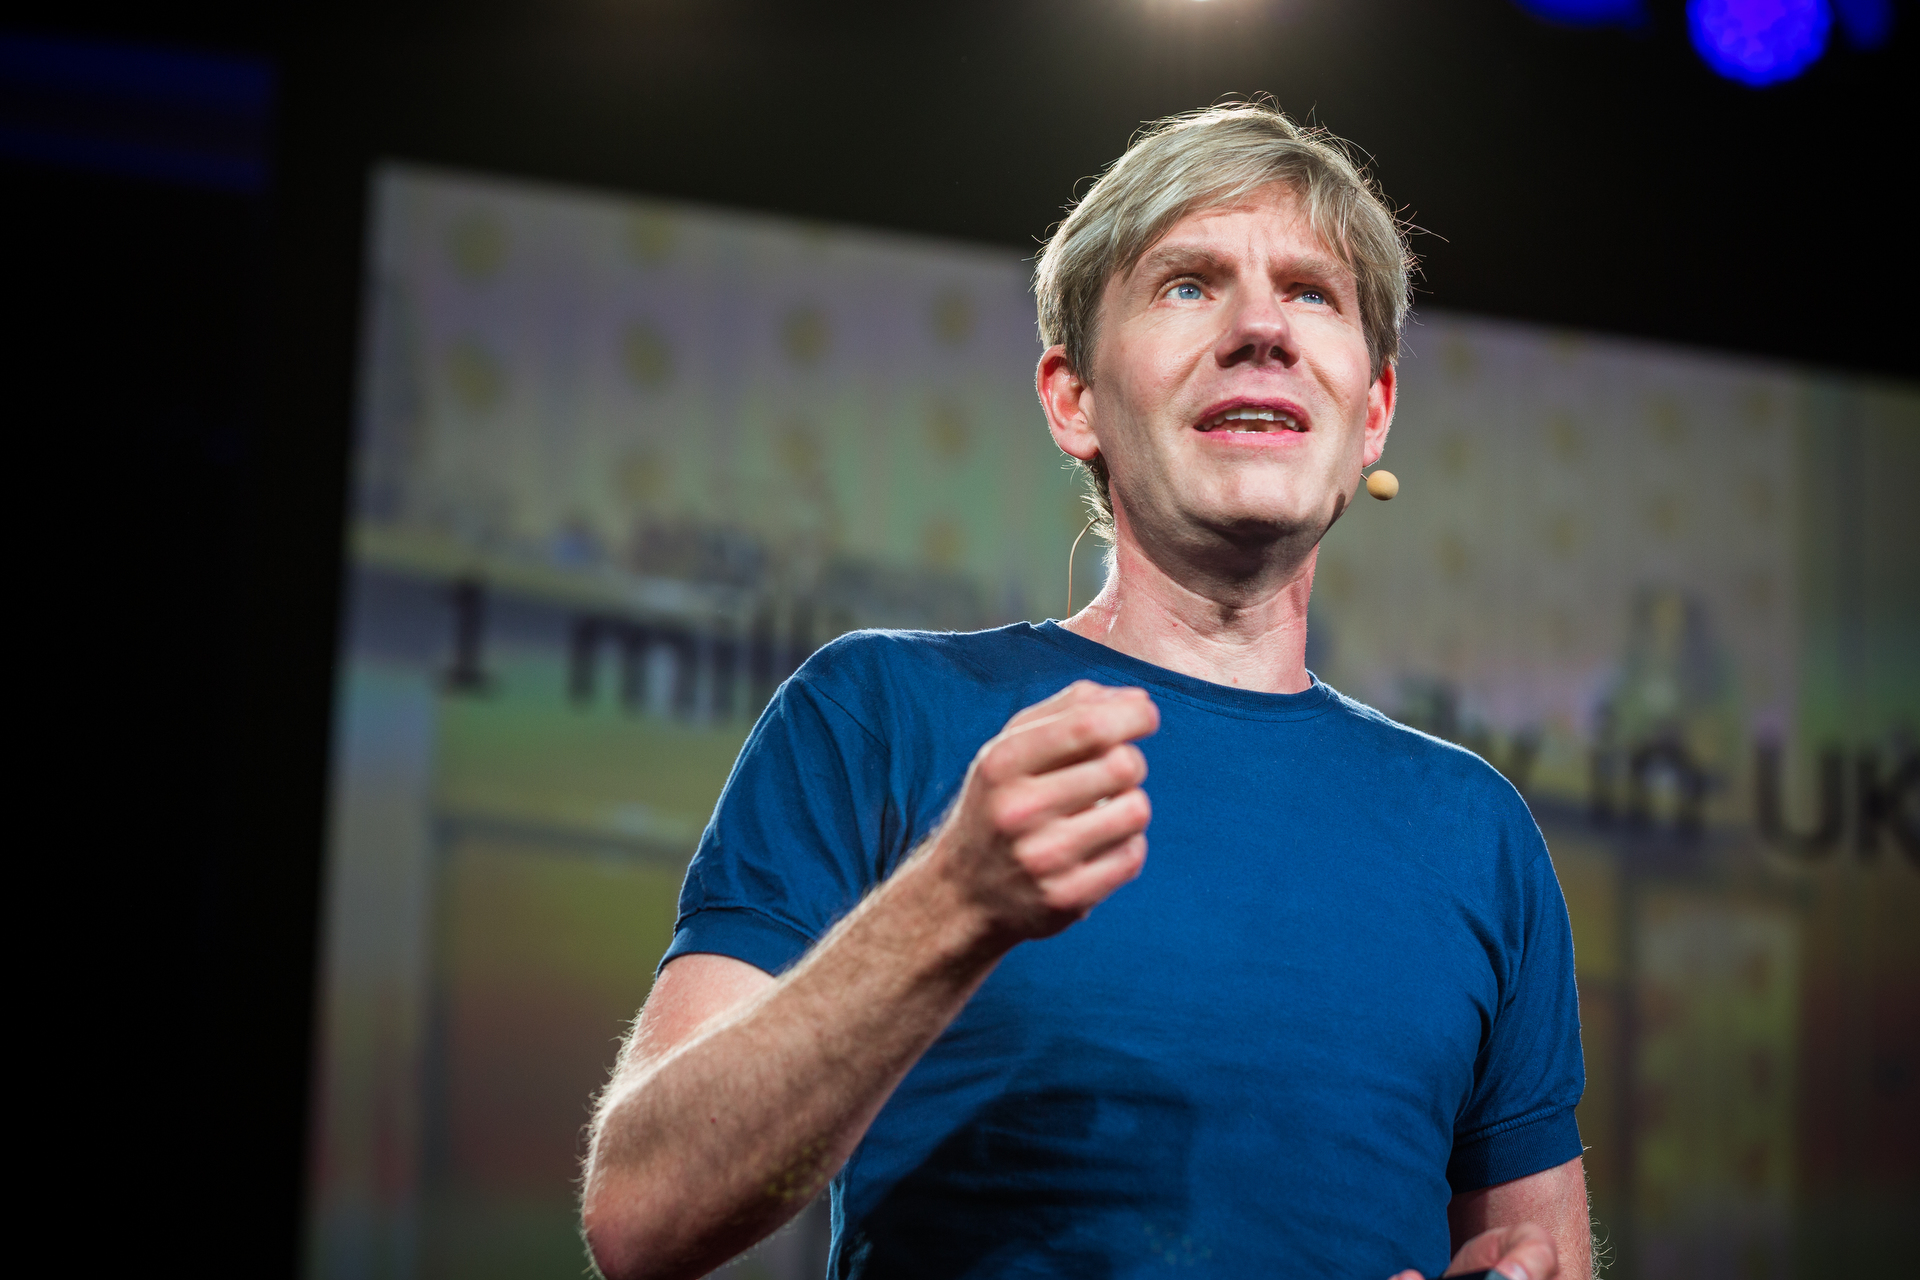 Some public figures who aim to refute scientific consensus, such as Bjørn Lomborg, have a strong following despite their lack of credibility.  TED Conference/Flickr  (CC BY-NC 2.0)